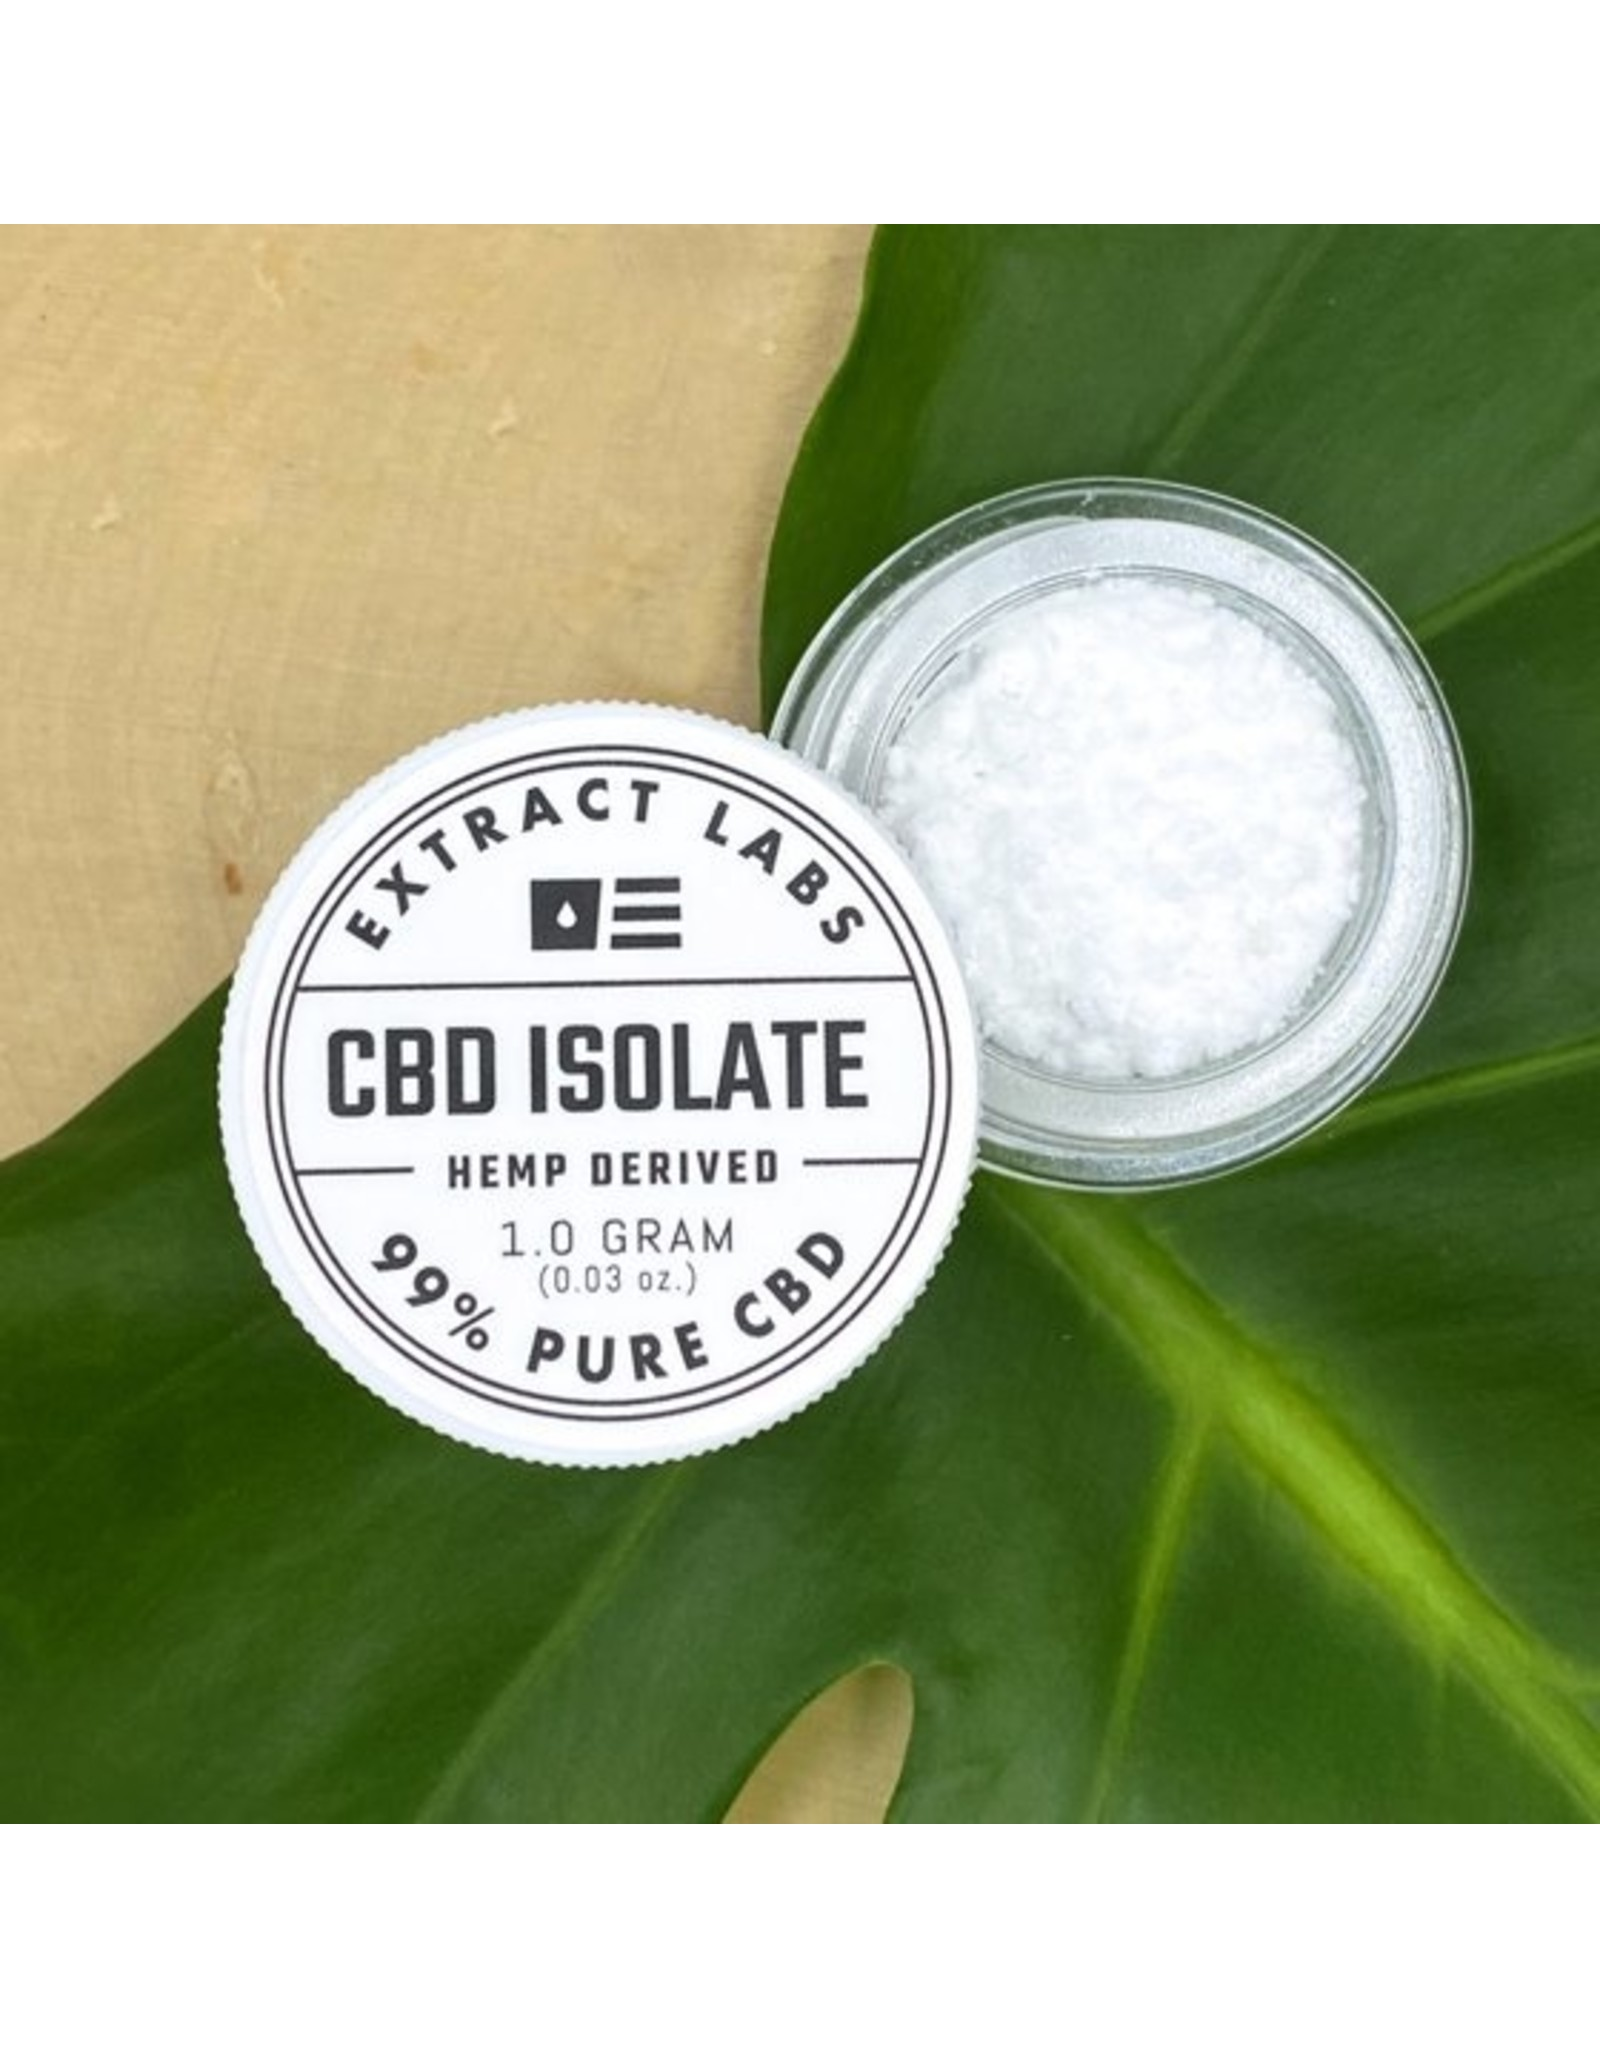 Extract Labs Extract labs 1g CBD Isolate